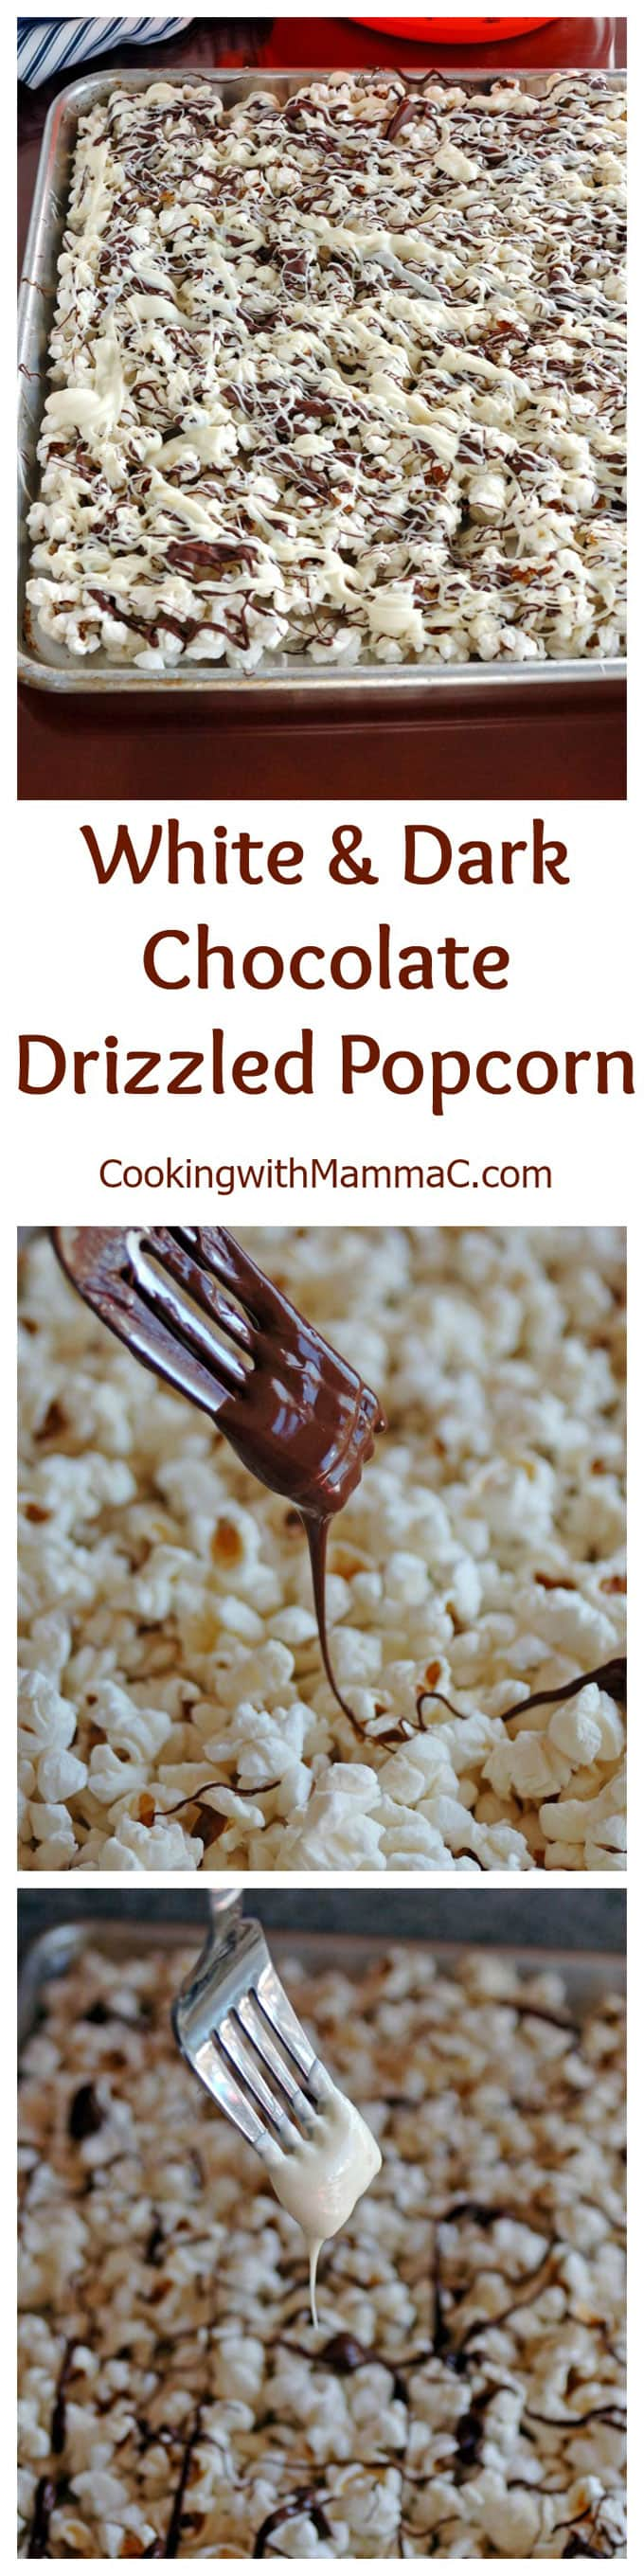 photo collage of white and dark chocolate drizzled popcorn